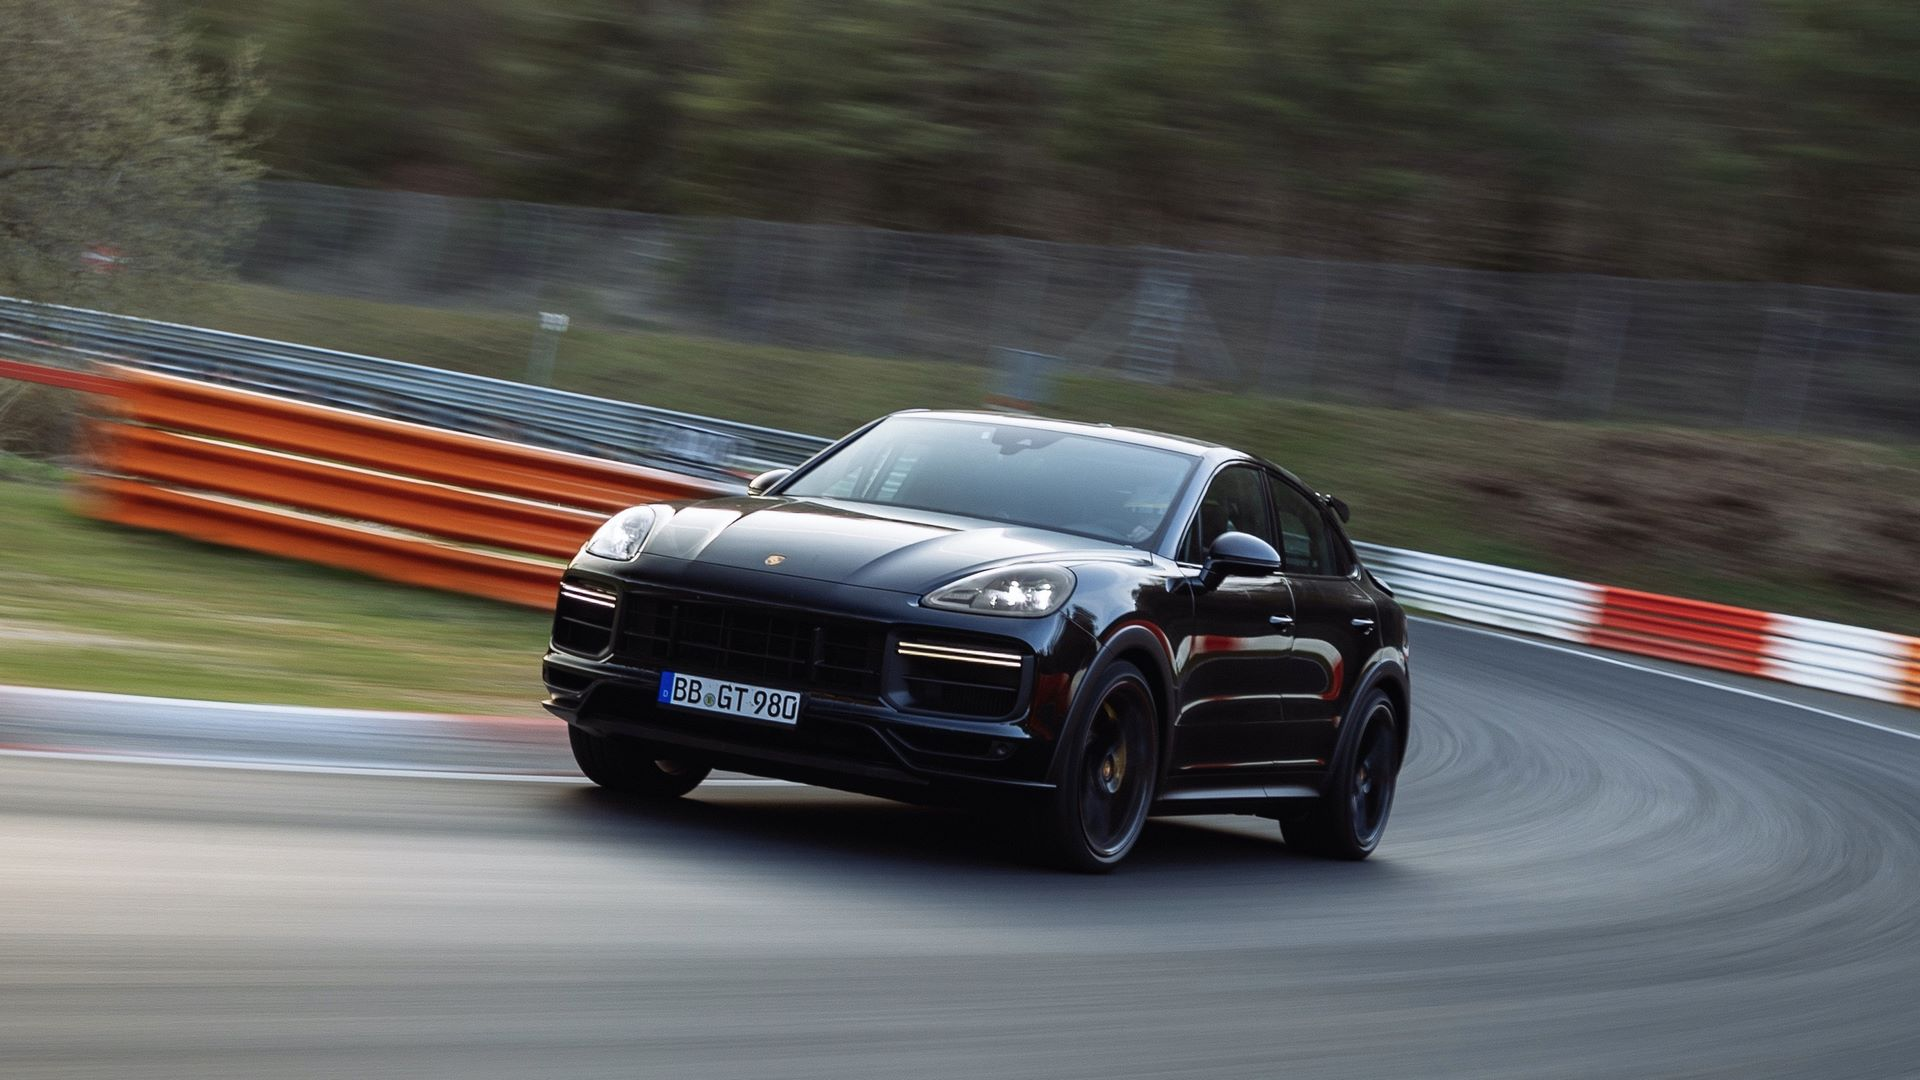 Porsche-Cayenne-Coupe-Nurburgring-SUV-lap-record-5